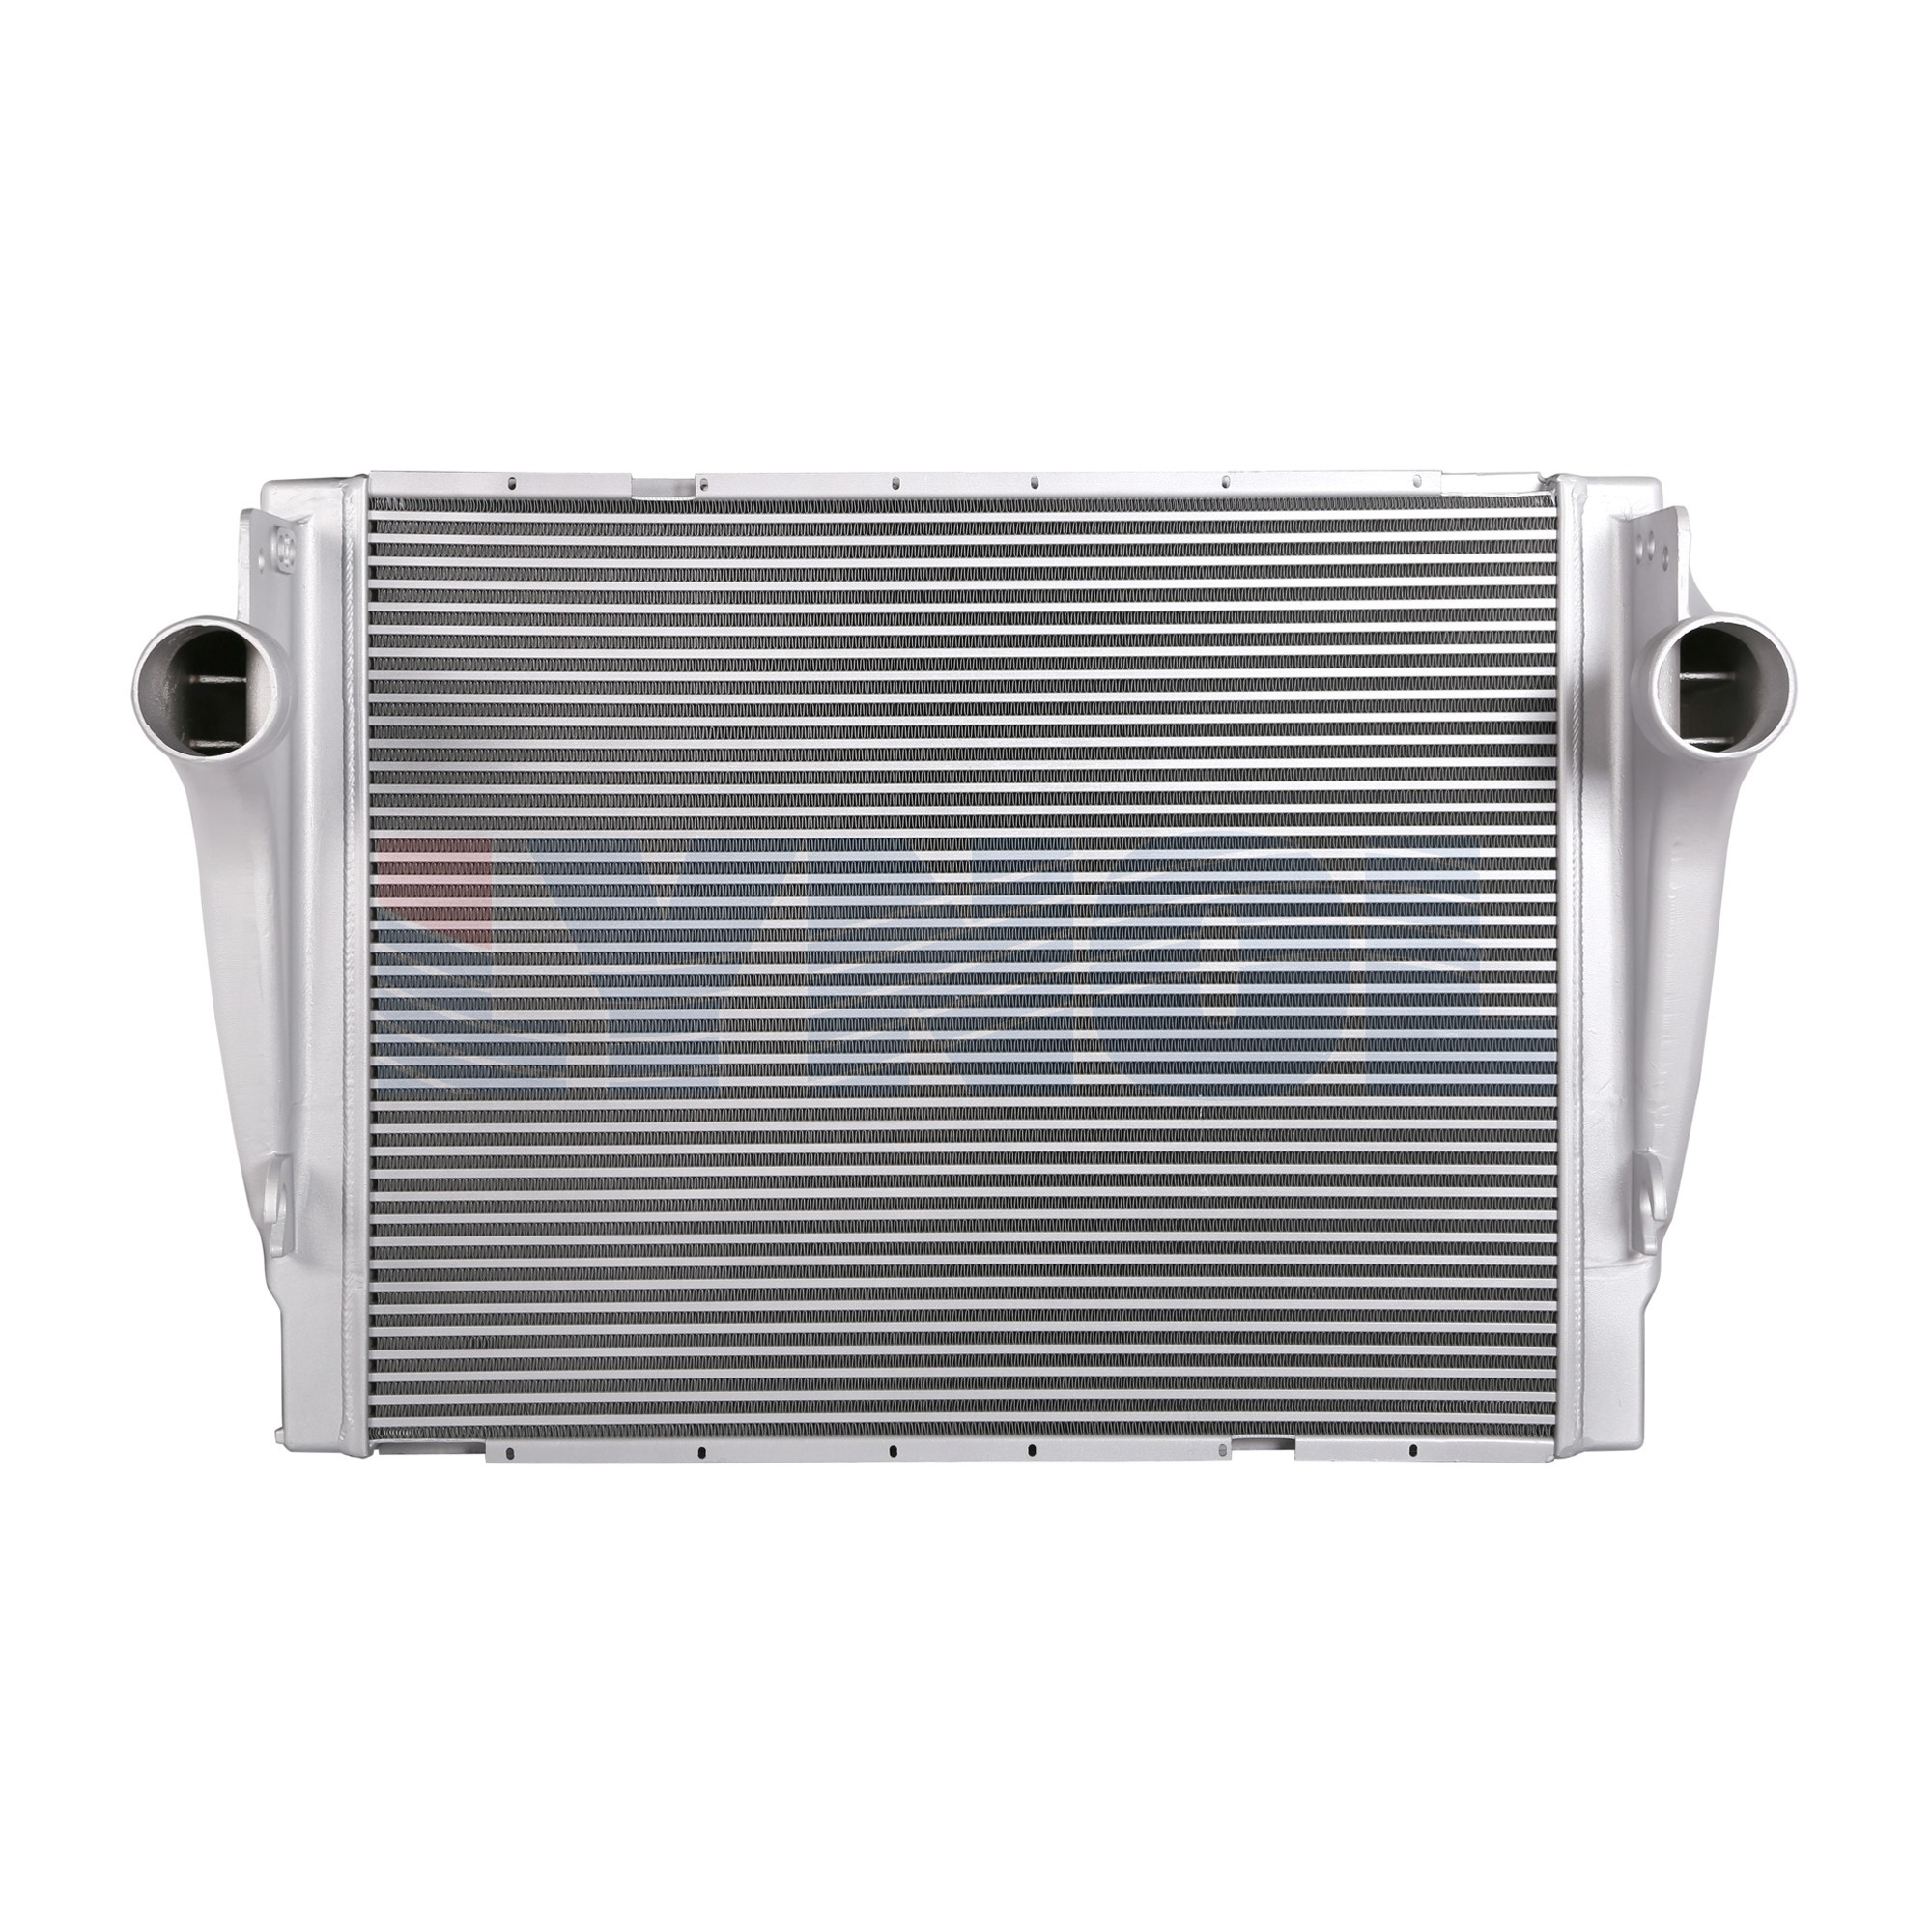 2401-005 - Peterbilt / Kenworth Charge Air Cooler